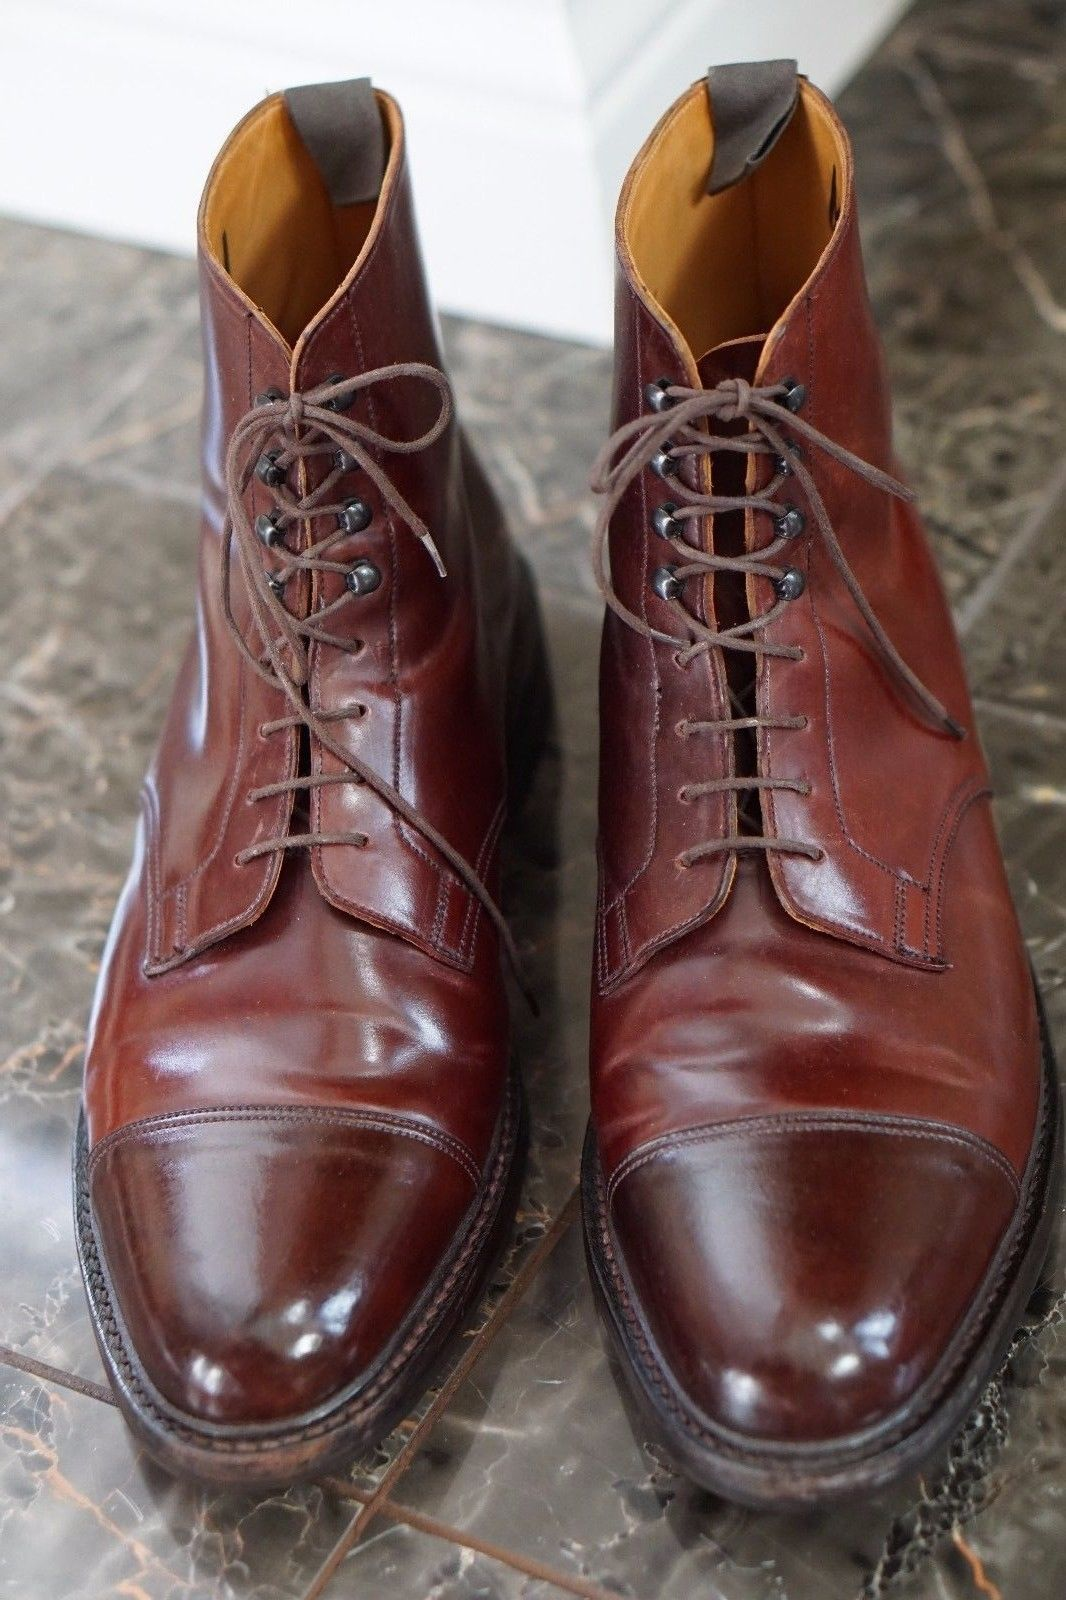 68f26ce52cc Crockett   jones peal   co shell cordovan captoe boot burgundy 13 d ...